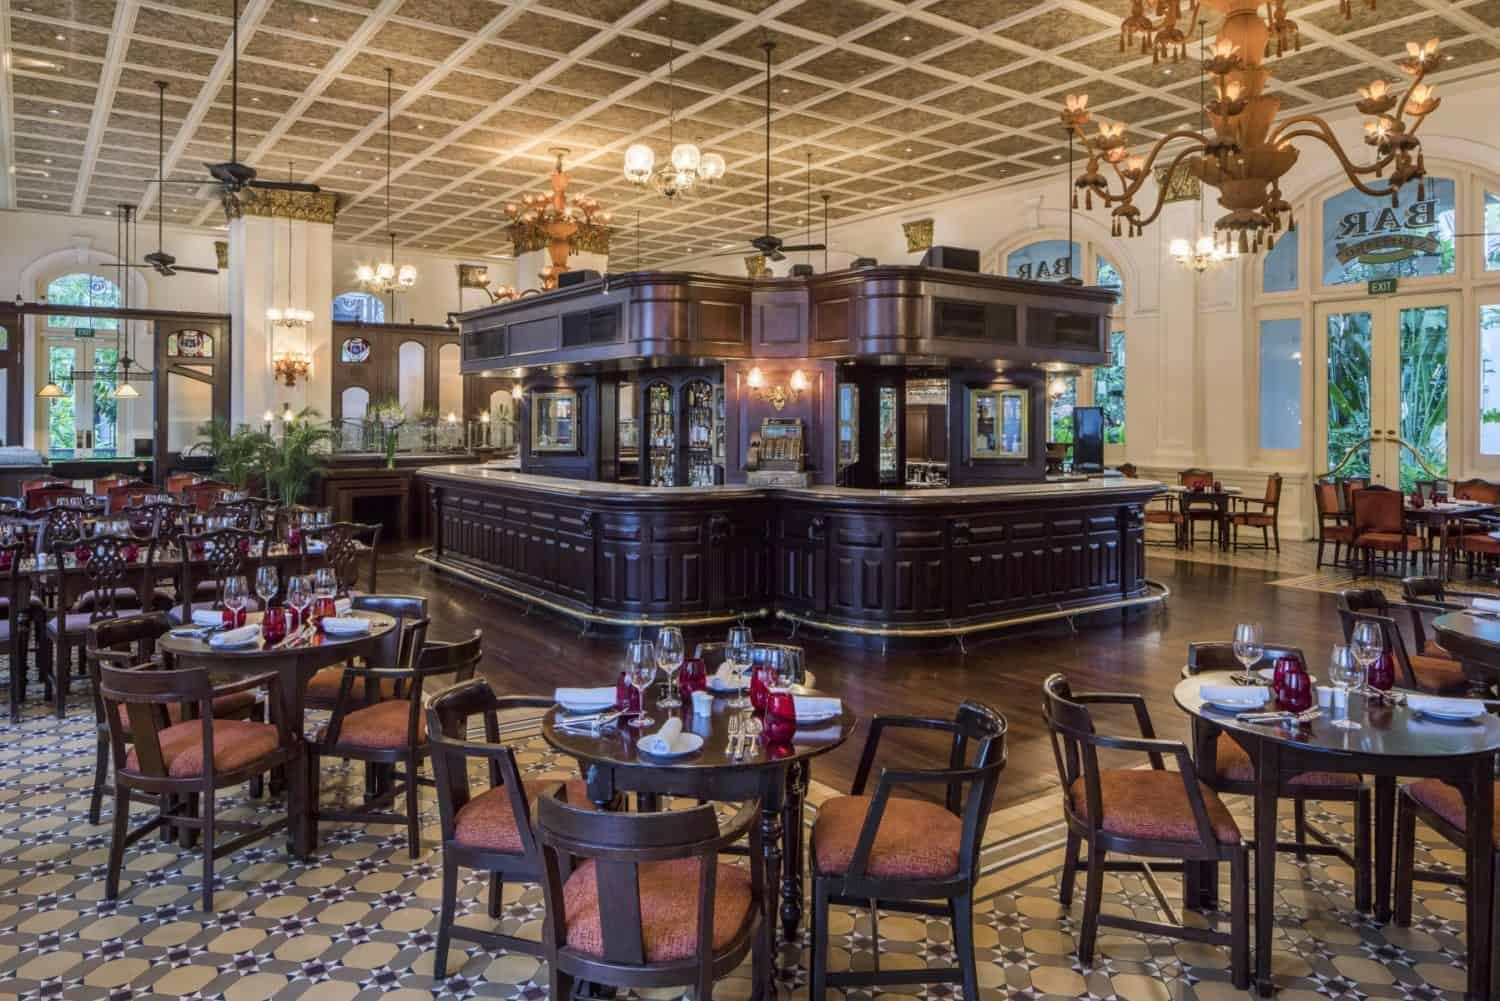 Raffles-Hotel-Bar-Billard-Room-1